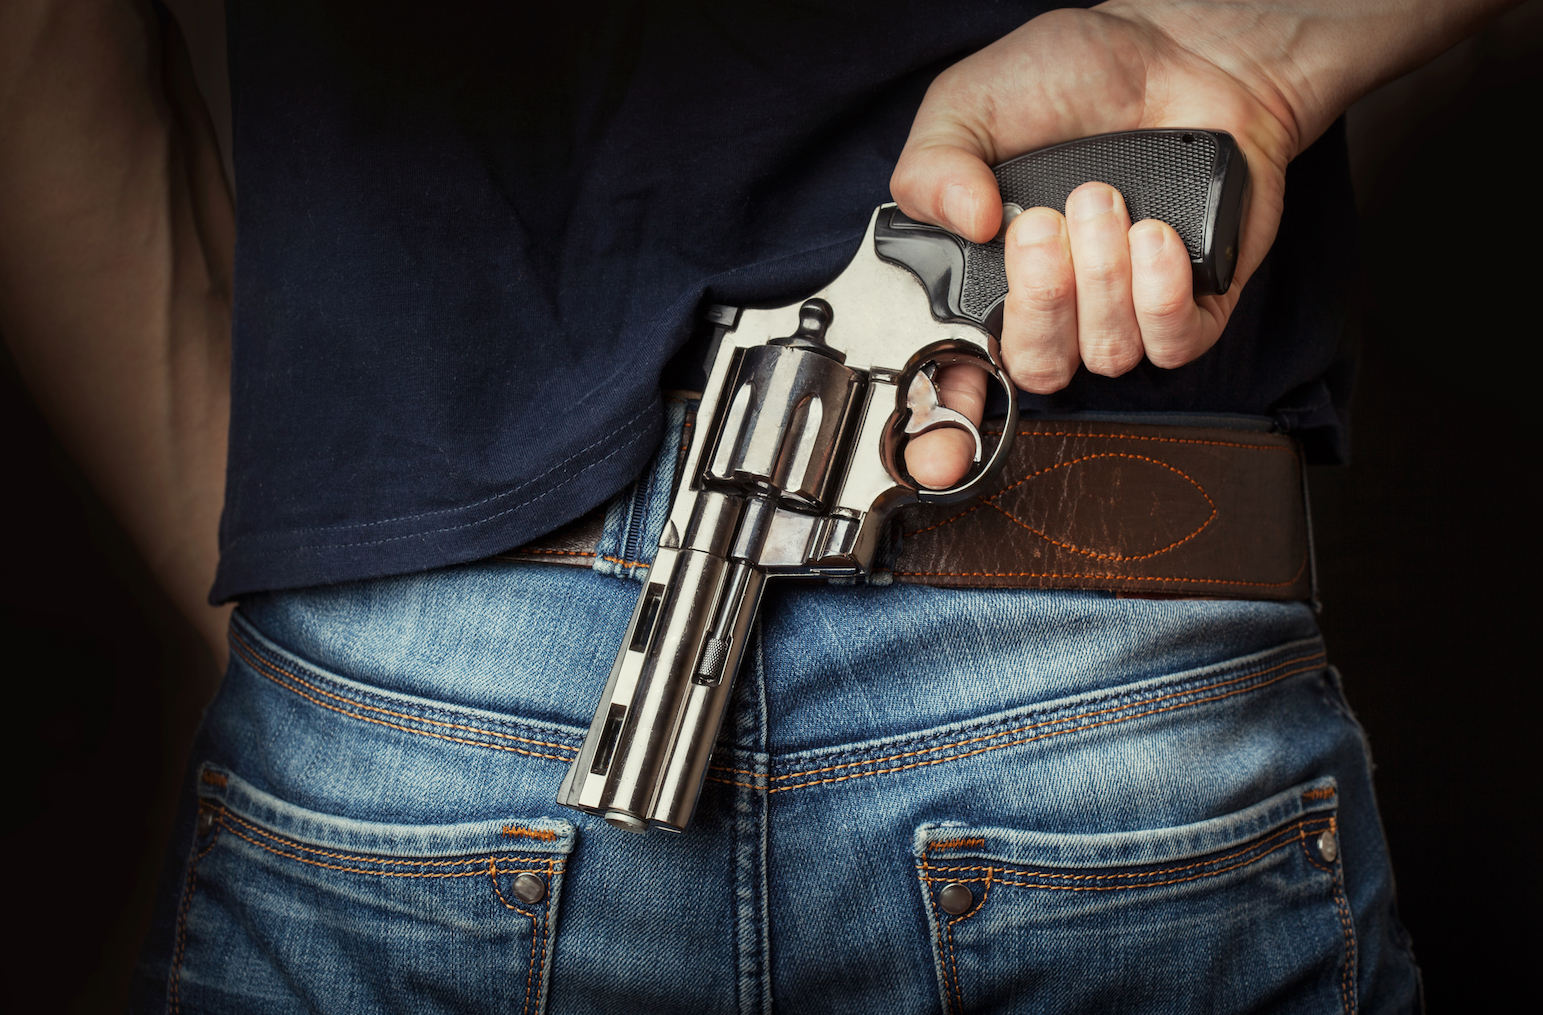 A new study found that white men who are financially stressed are more likely to cling to their guns for moral support.